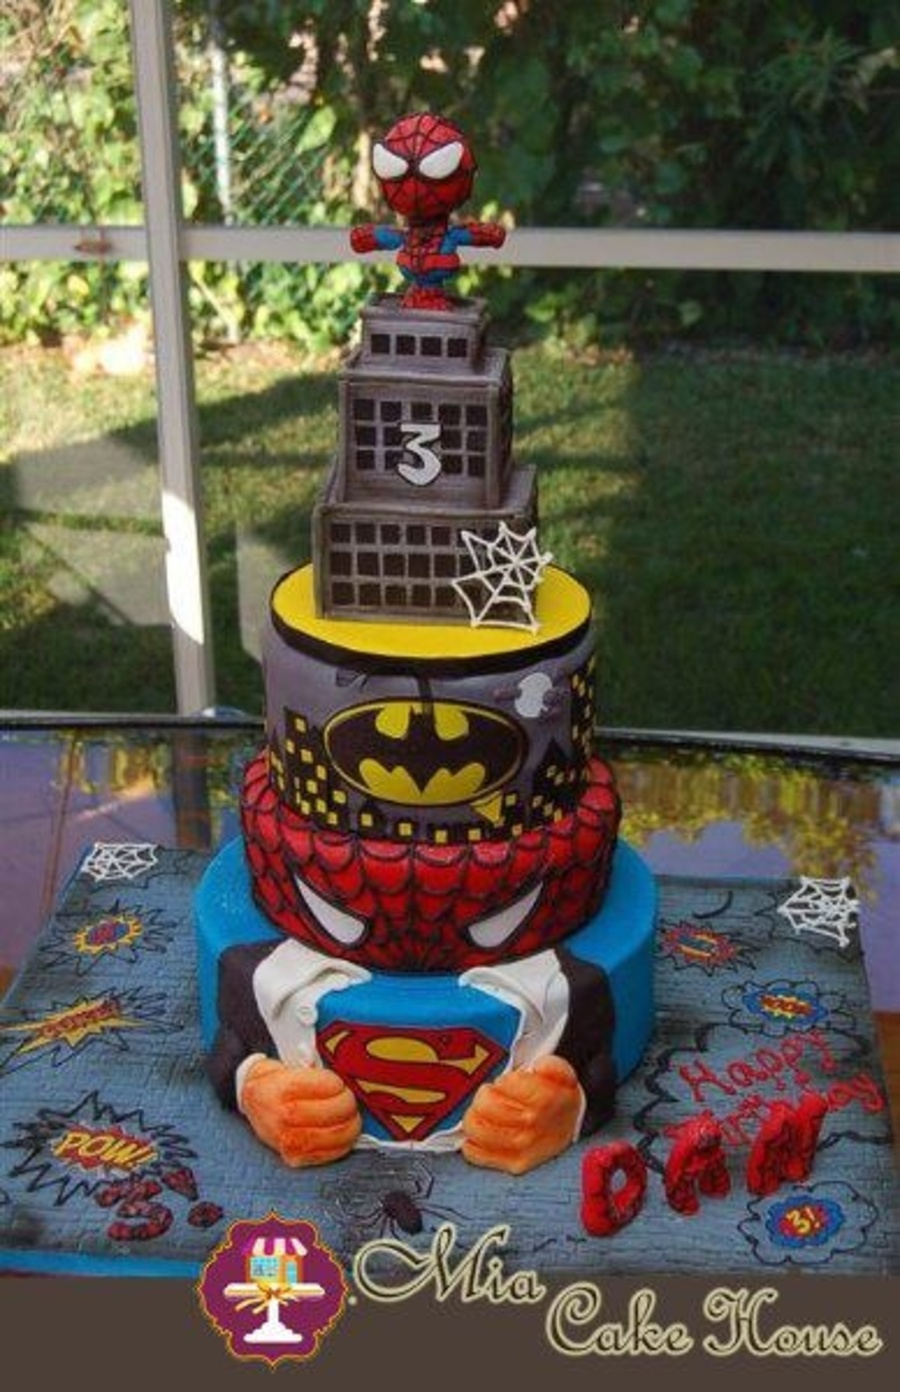 My Son Wanted 3 Different Cakes For His Birthday Party Spiderman Batman And Superman We Decided To Design A Cake That Includes His Three on Cake Central